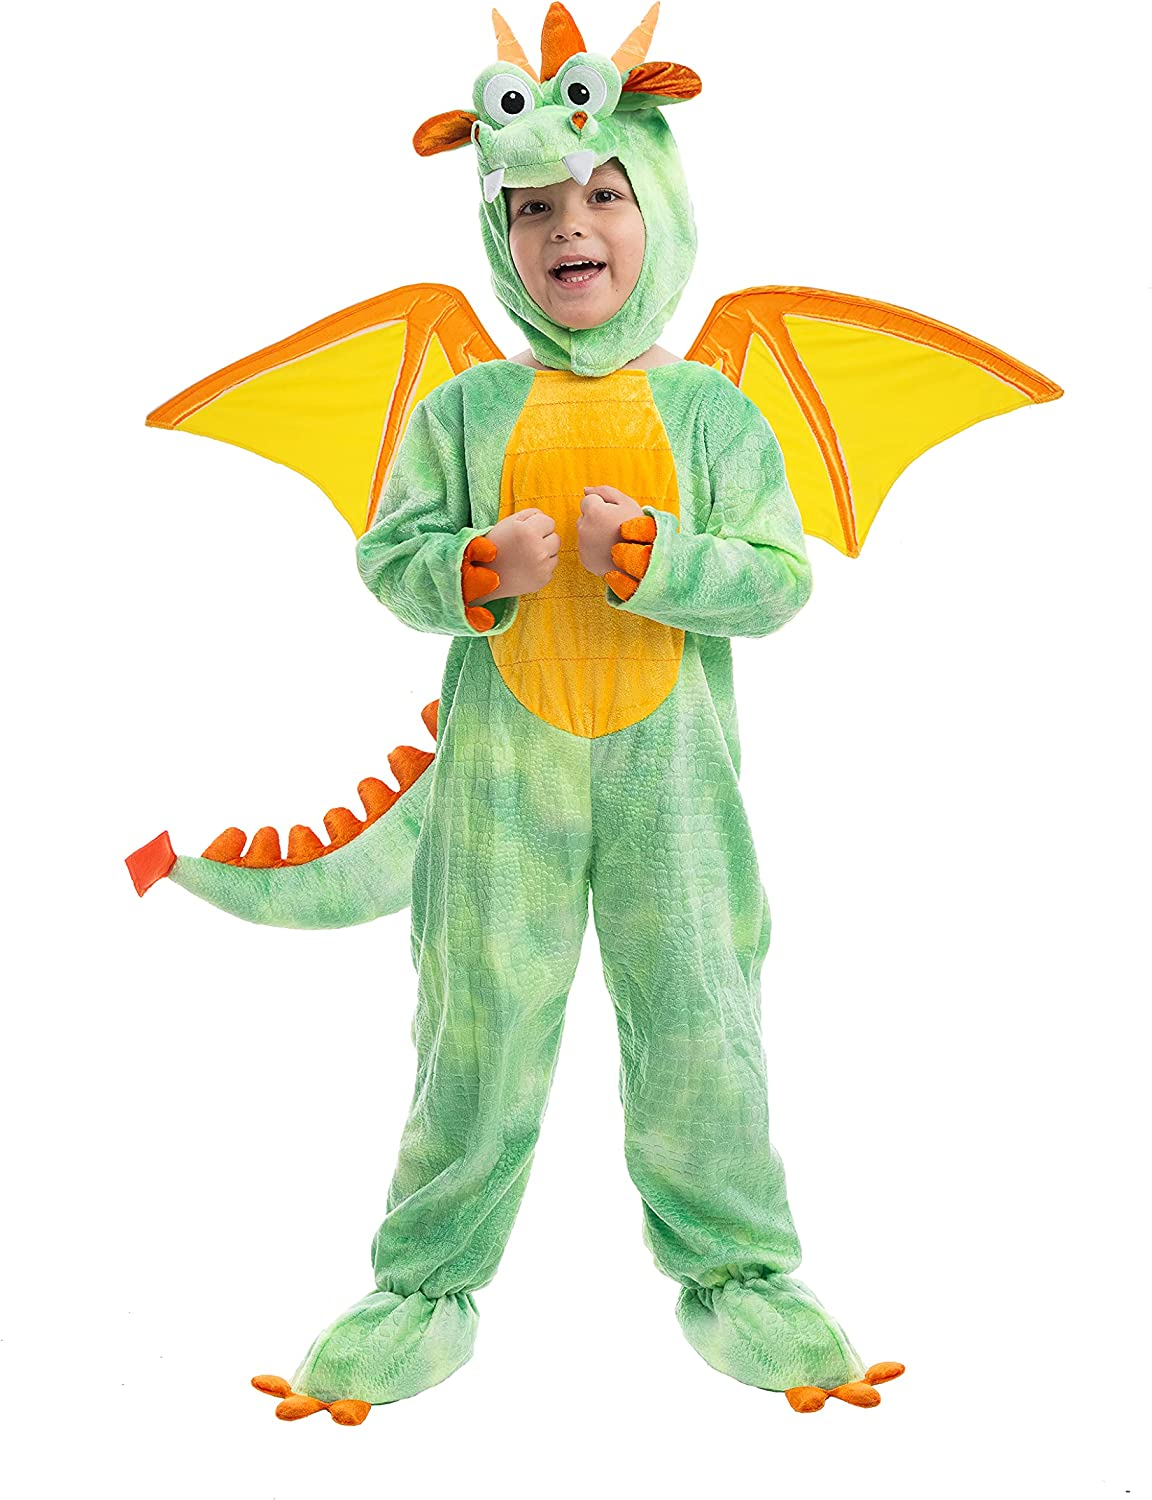 Spooktacular Creations Deluxe Dragon Costume with Max 86% OFF Toys for shipfree K Set